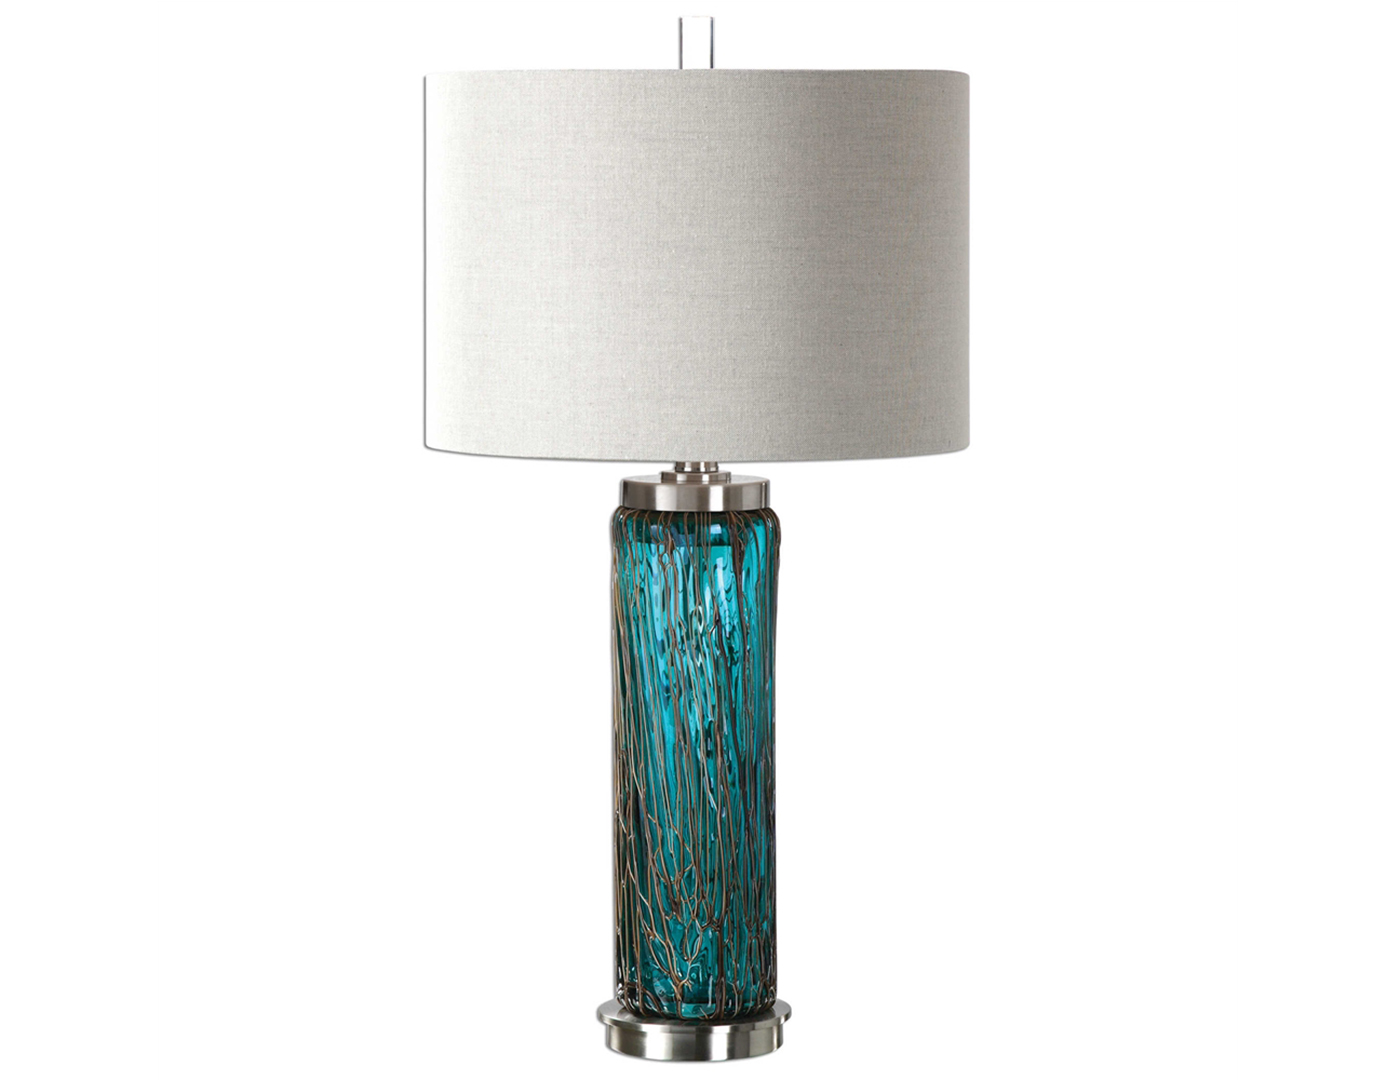 "Blue Glass With Metal Accents Table Lamp 30""H"